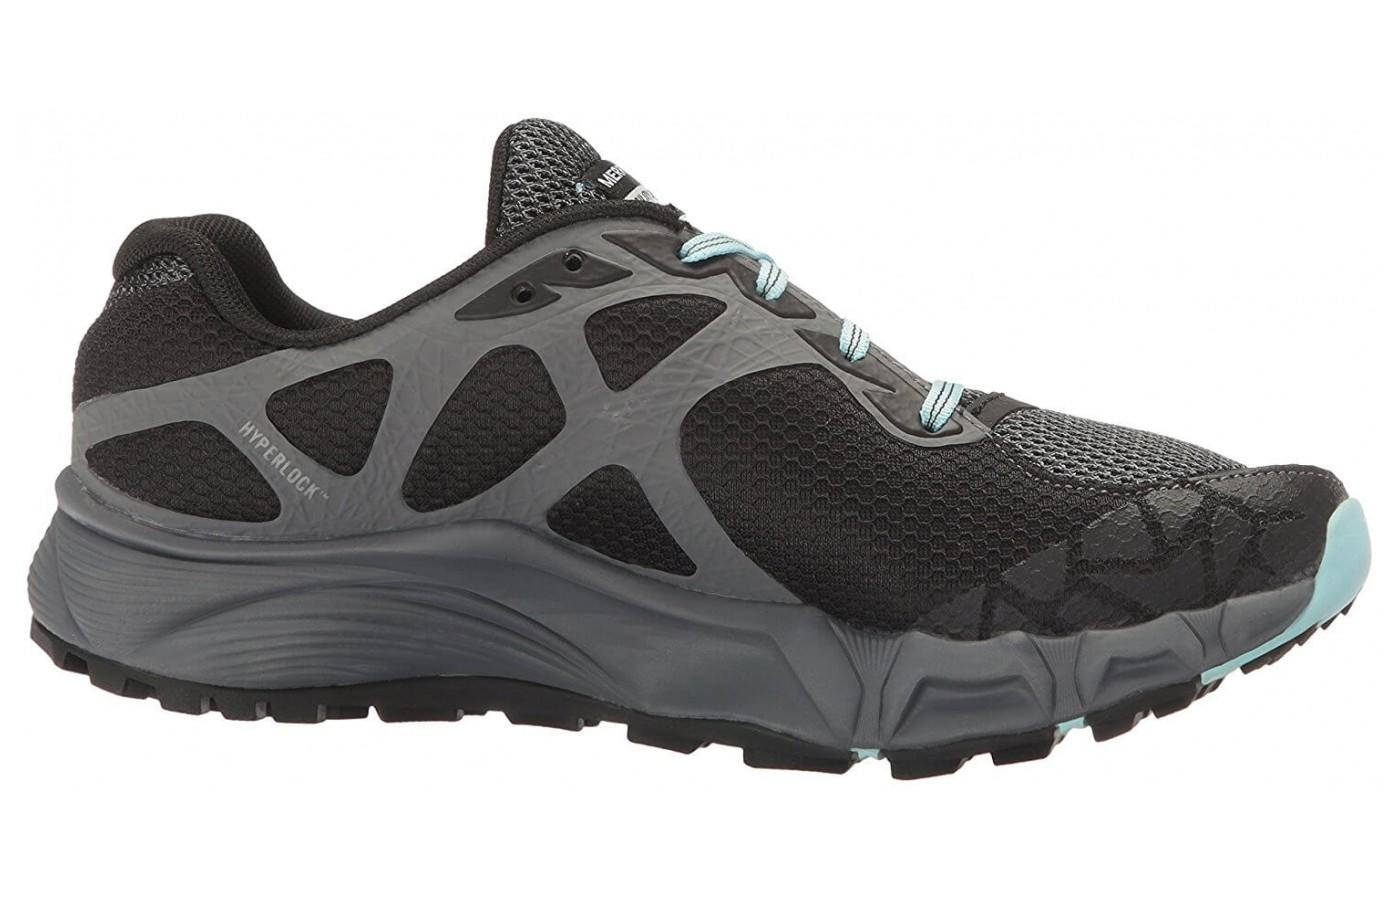 Merrell Agility Charge Flex in women's grey version